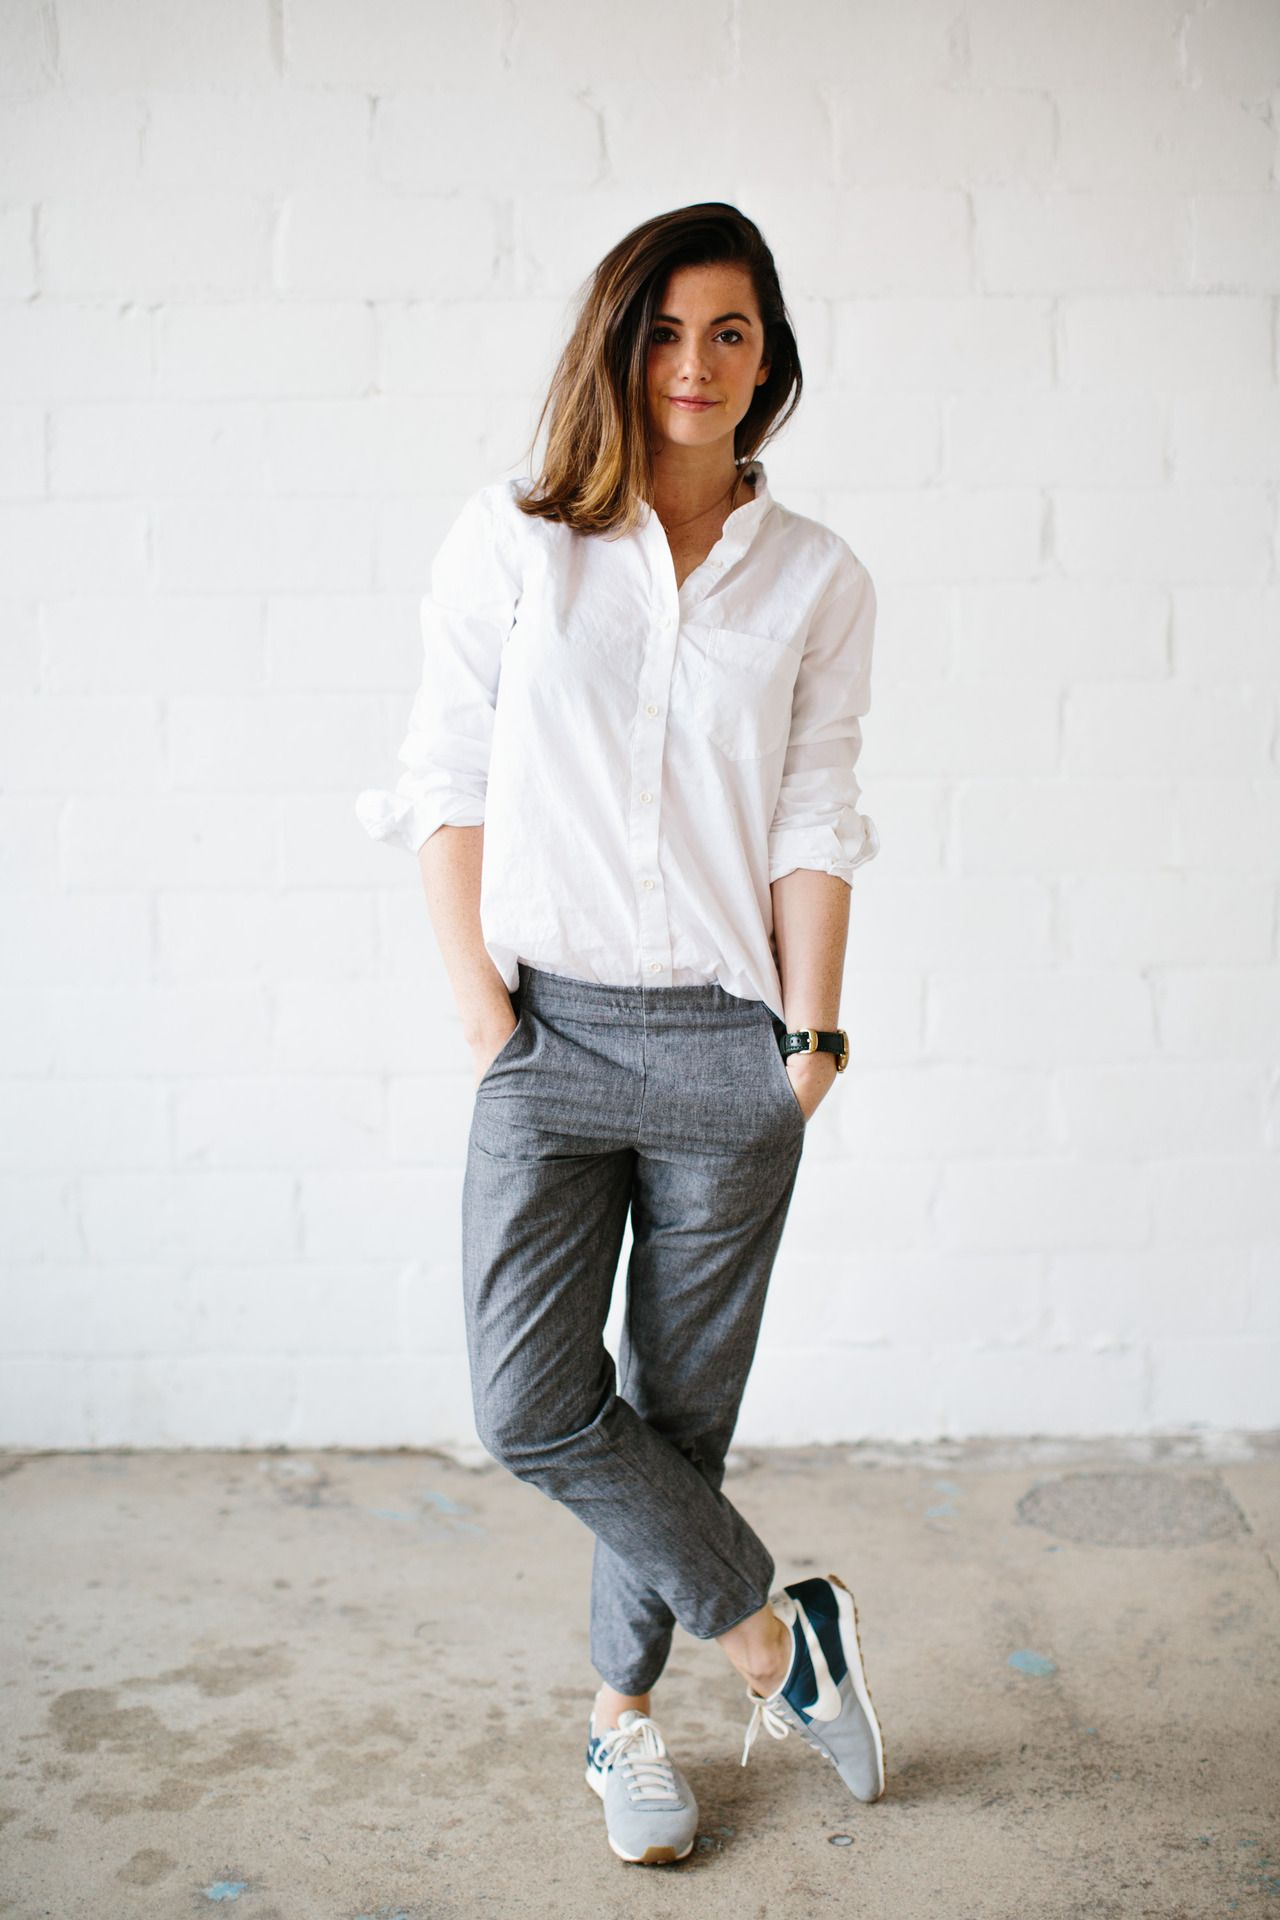 White long sleeve button shirt with grey pants / nike shoes / smart casual  outfit / minimal outfit